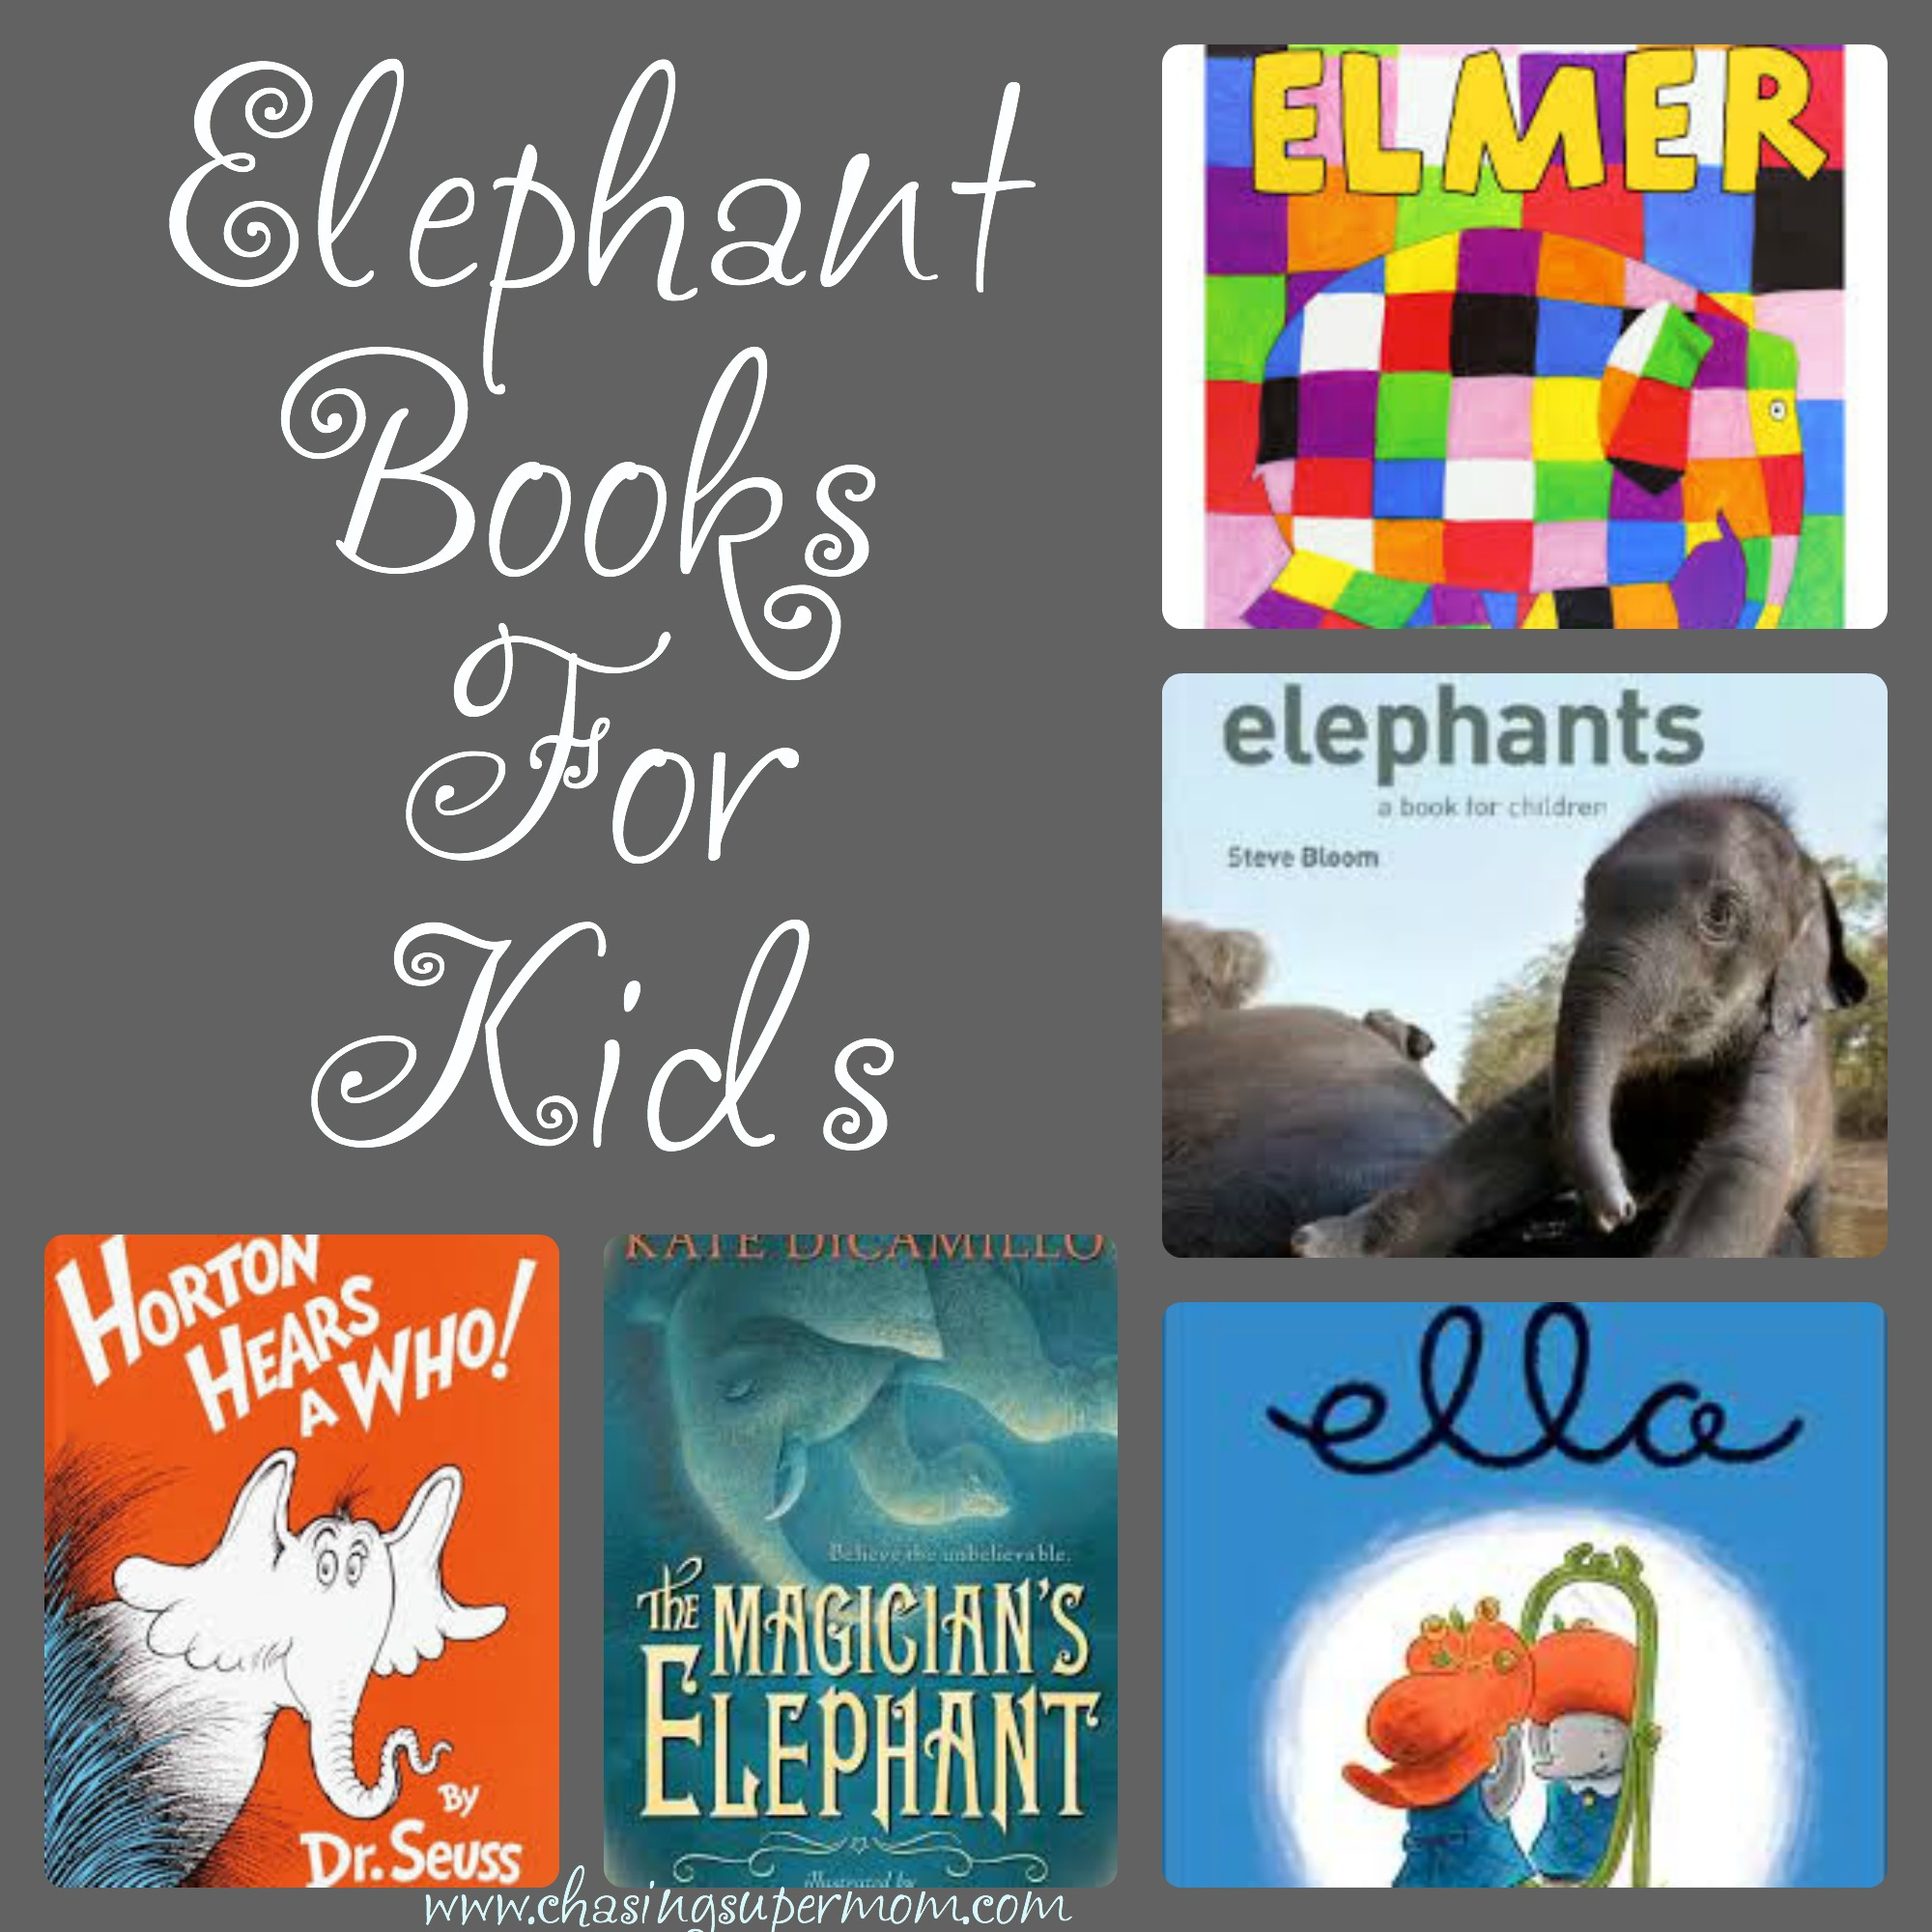 Books About Elephants : Elephant Books for Kids and Adults